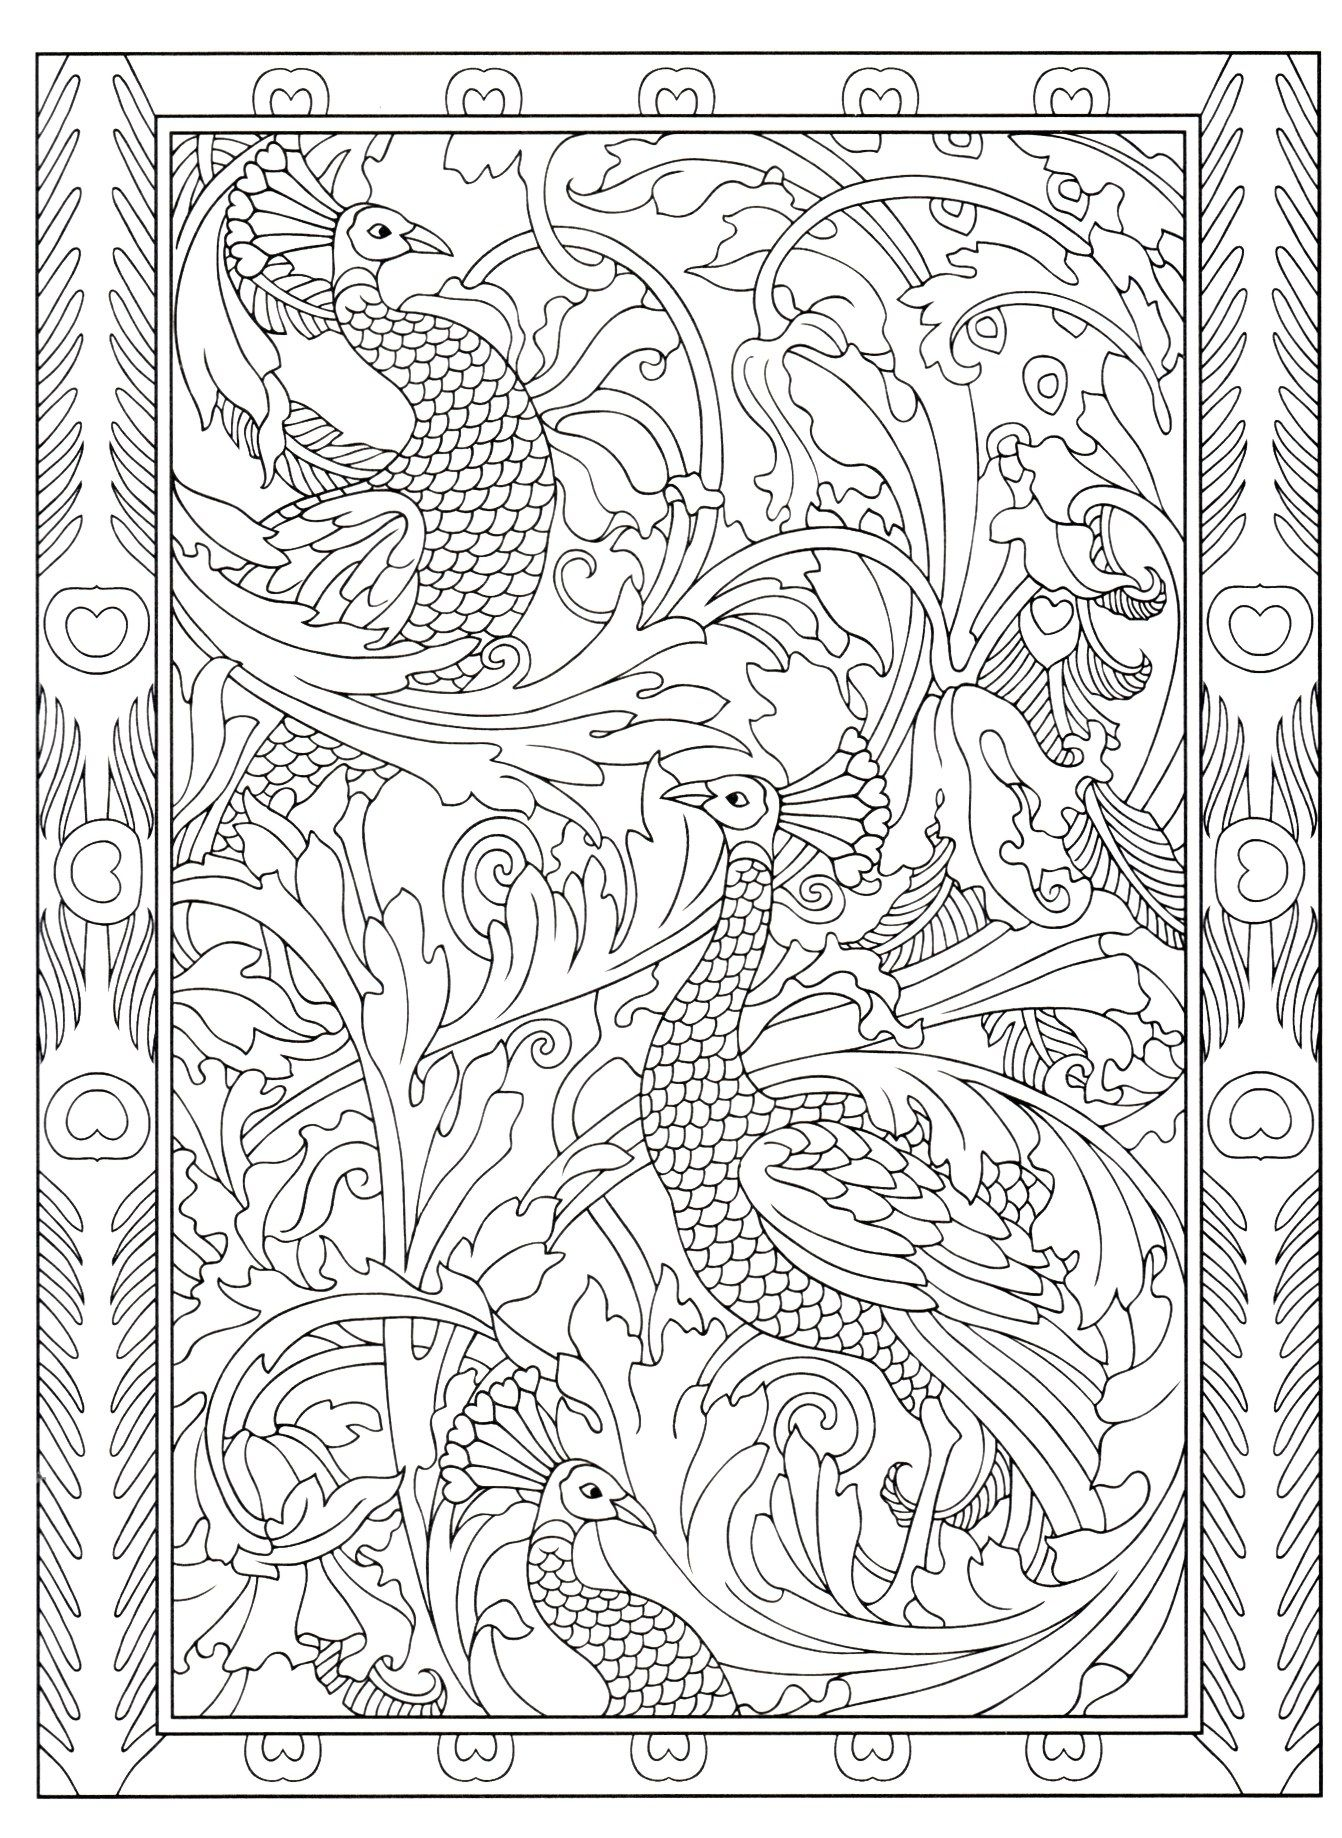 Creative Haven S Peacock Designs Designs Coloring Books Persian Art Painting Detailed Coloring Pages